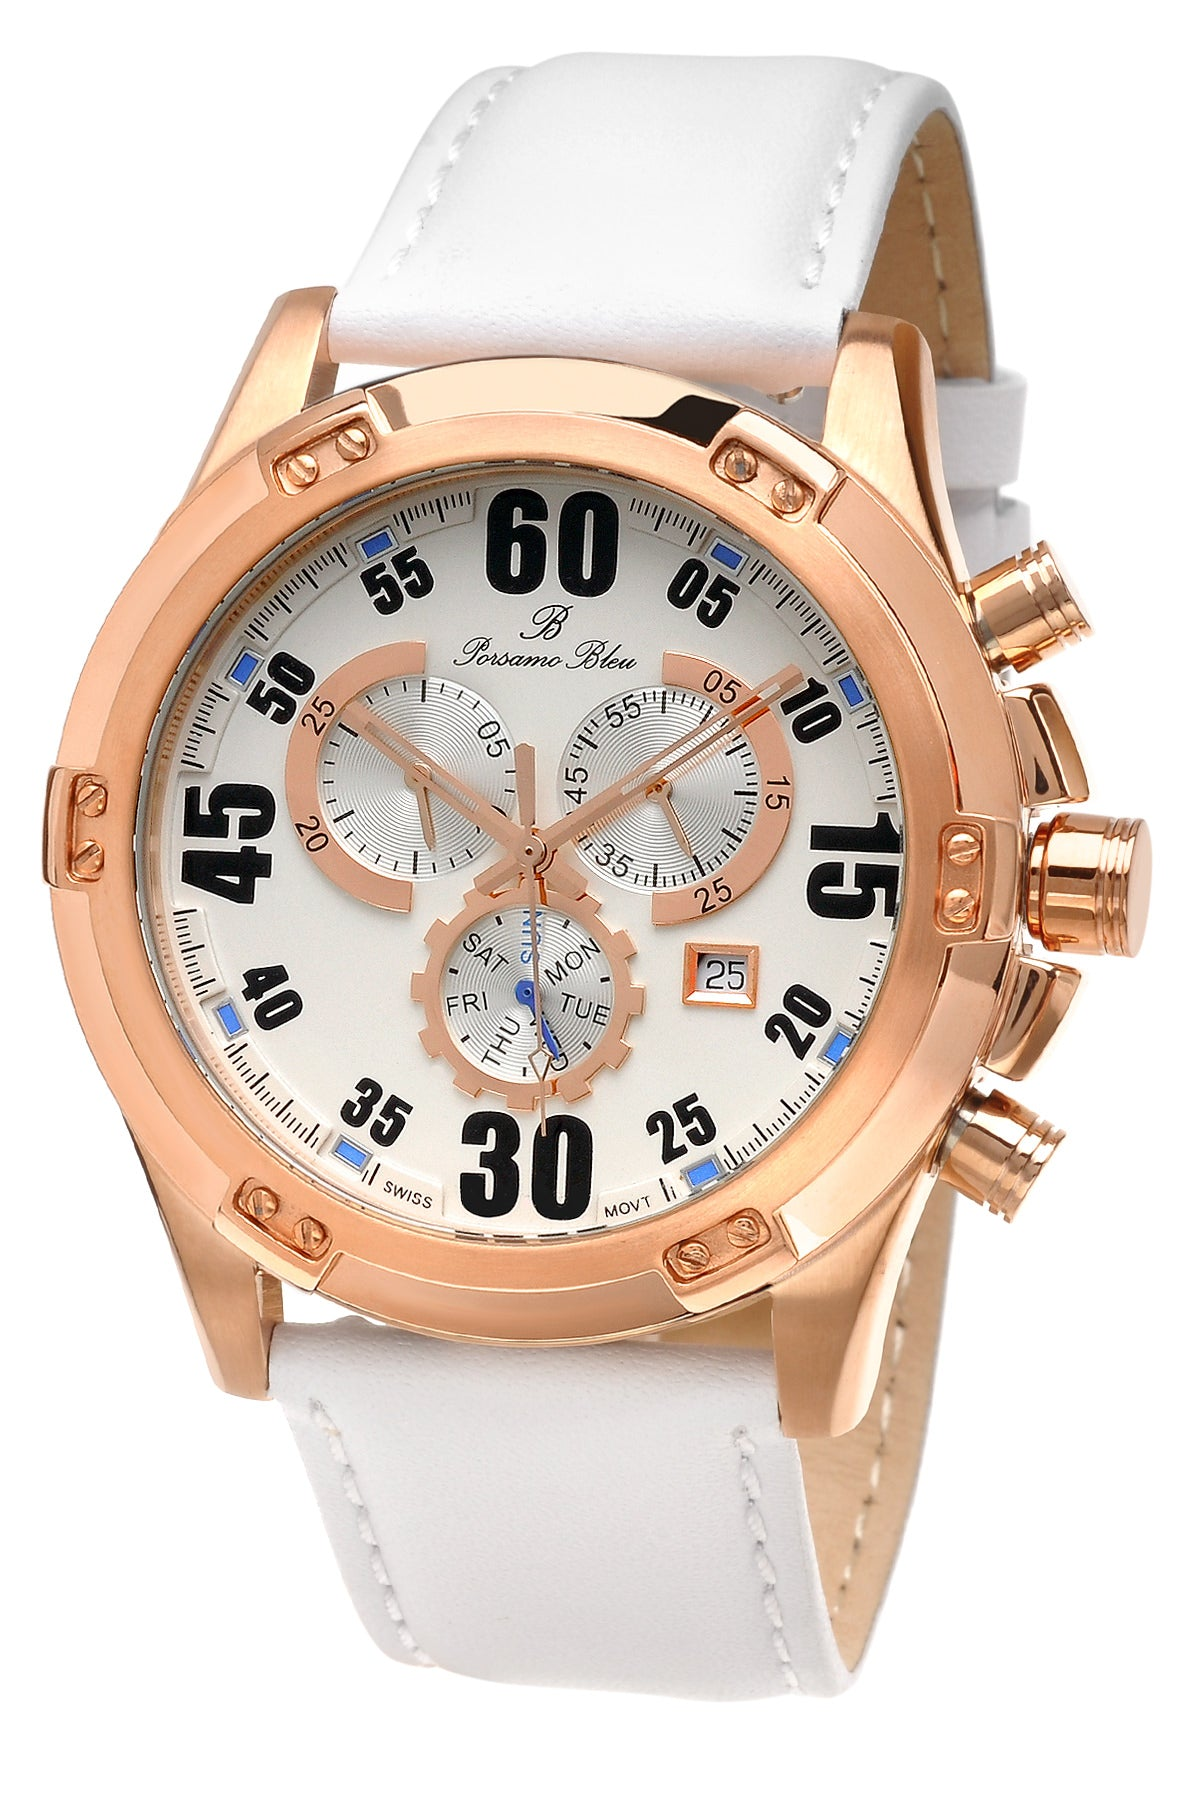 Porsamo Bleu Cancun luxury chronograph men's watch, genuine leather band, rose, white 062ACAL